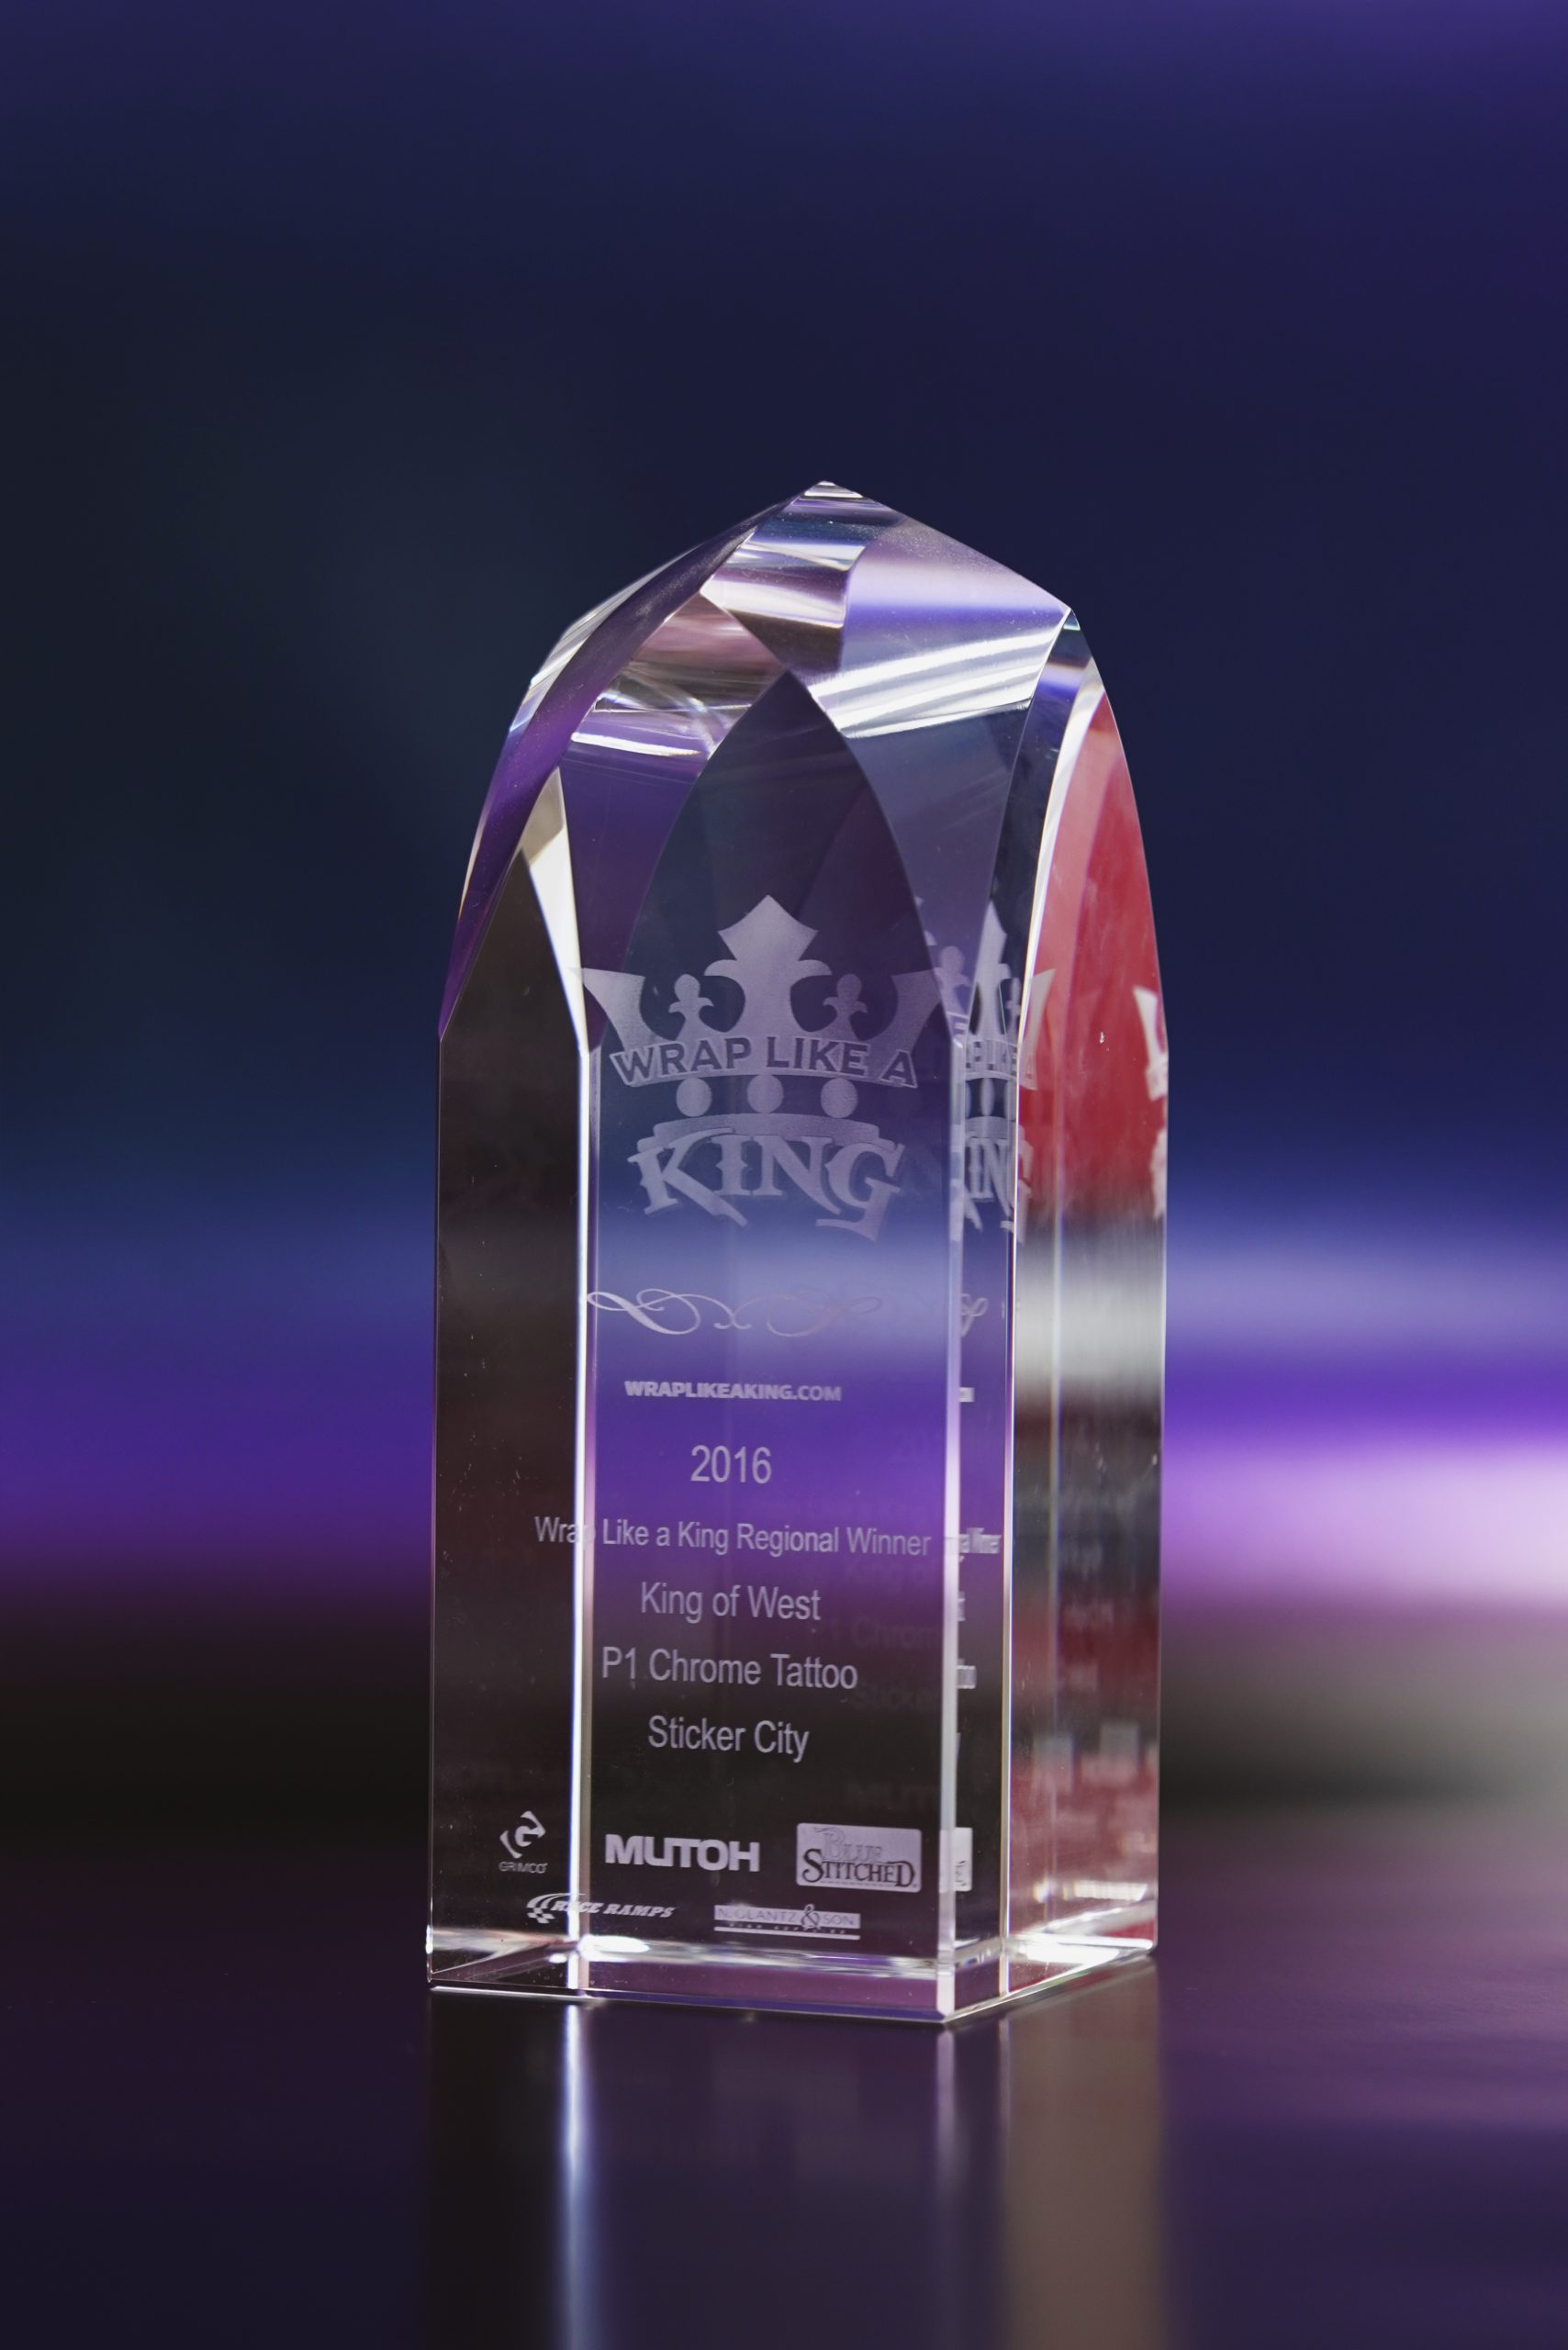 Avery Dennison in 2016 for winning the wrap like a king contest.